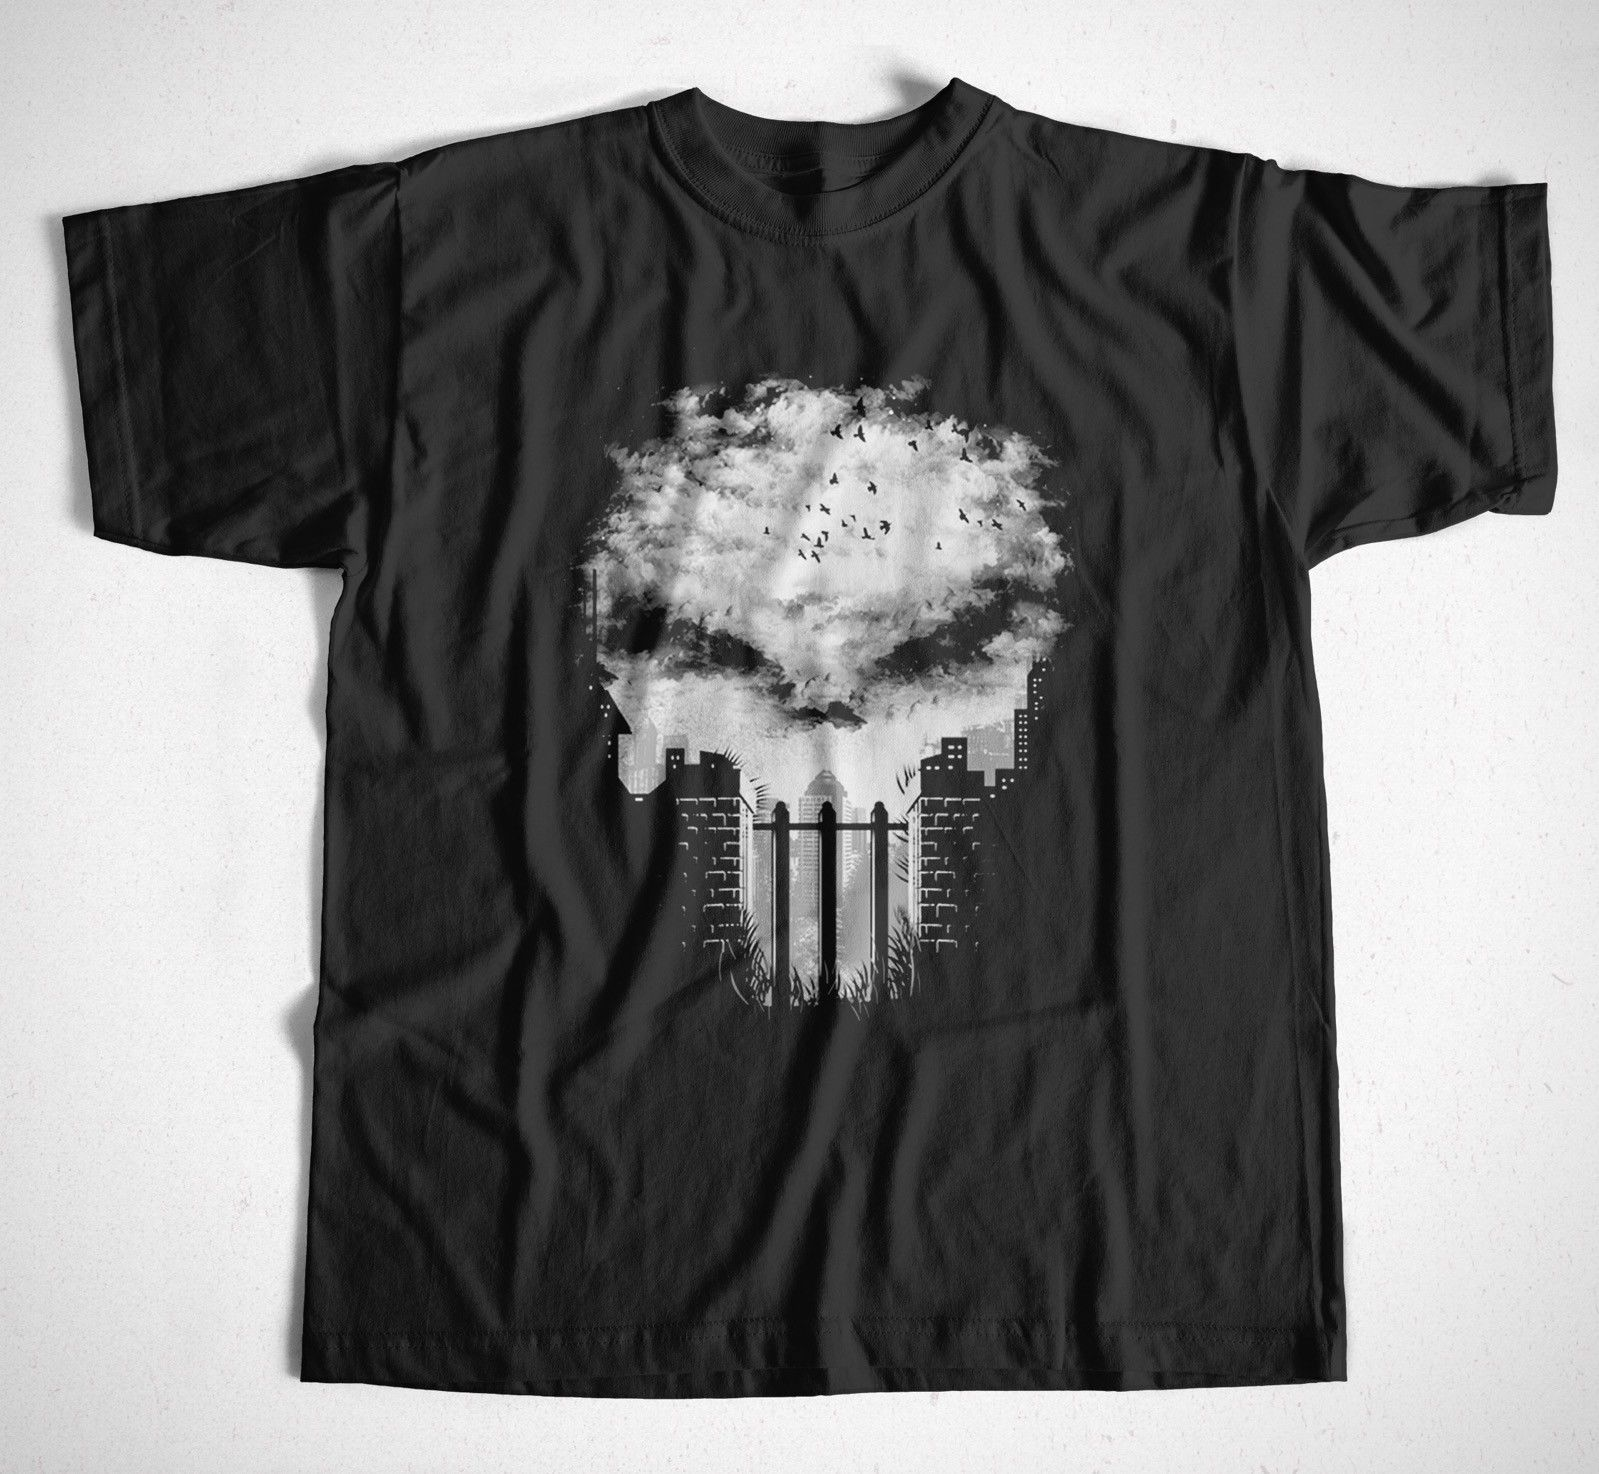 Newest 2019 Men'S Fashion T-Shirt Punisher 1 S-4XL Marvel Comics The Punisher Superheld Skull Totenkopf Summer Style image